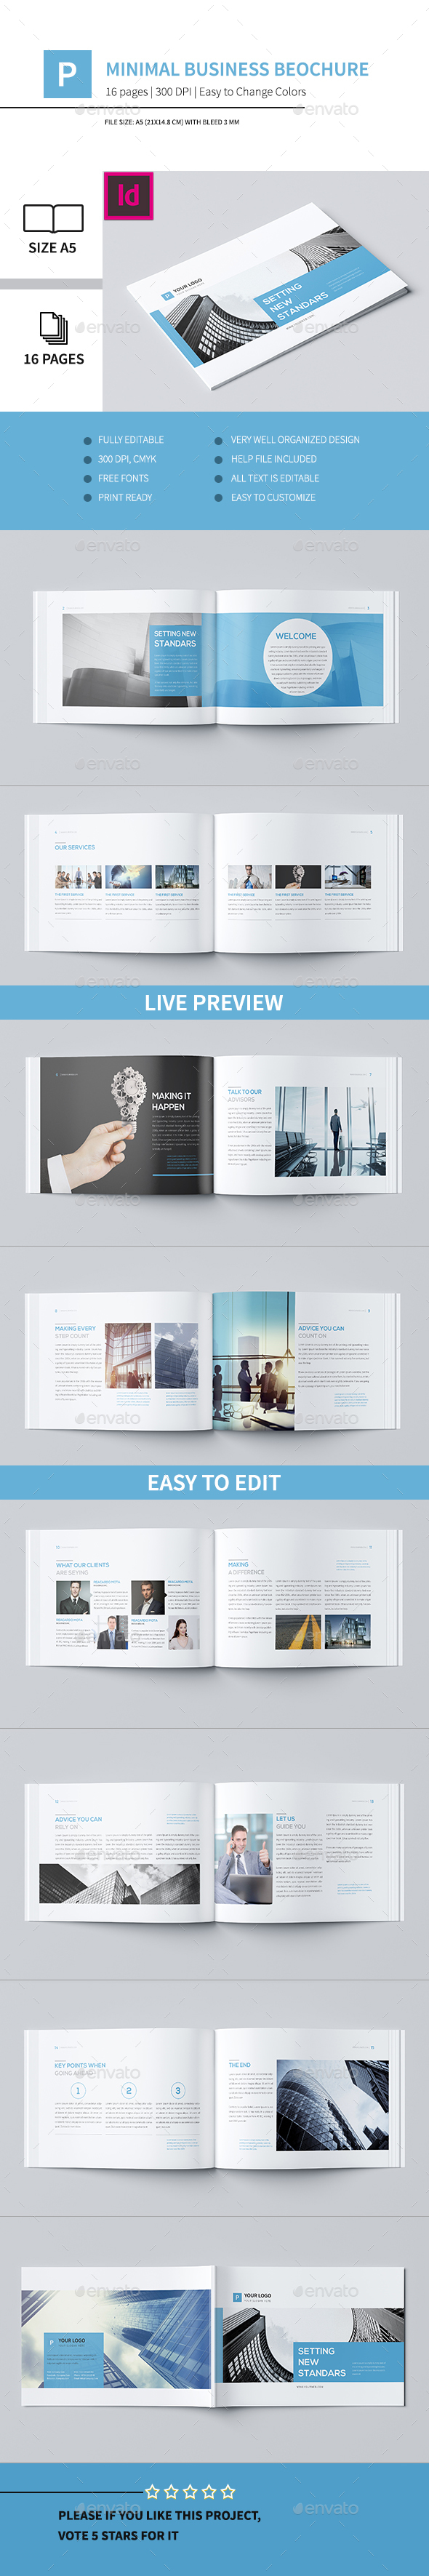 Minimal Business Brochure V - Corporate Brochures